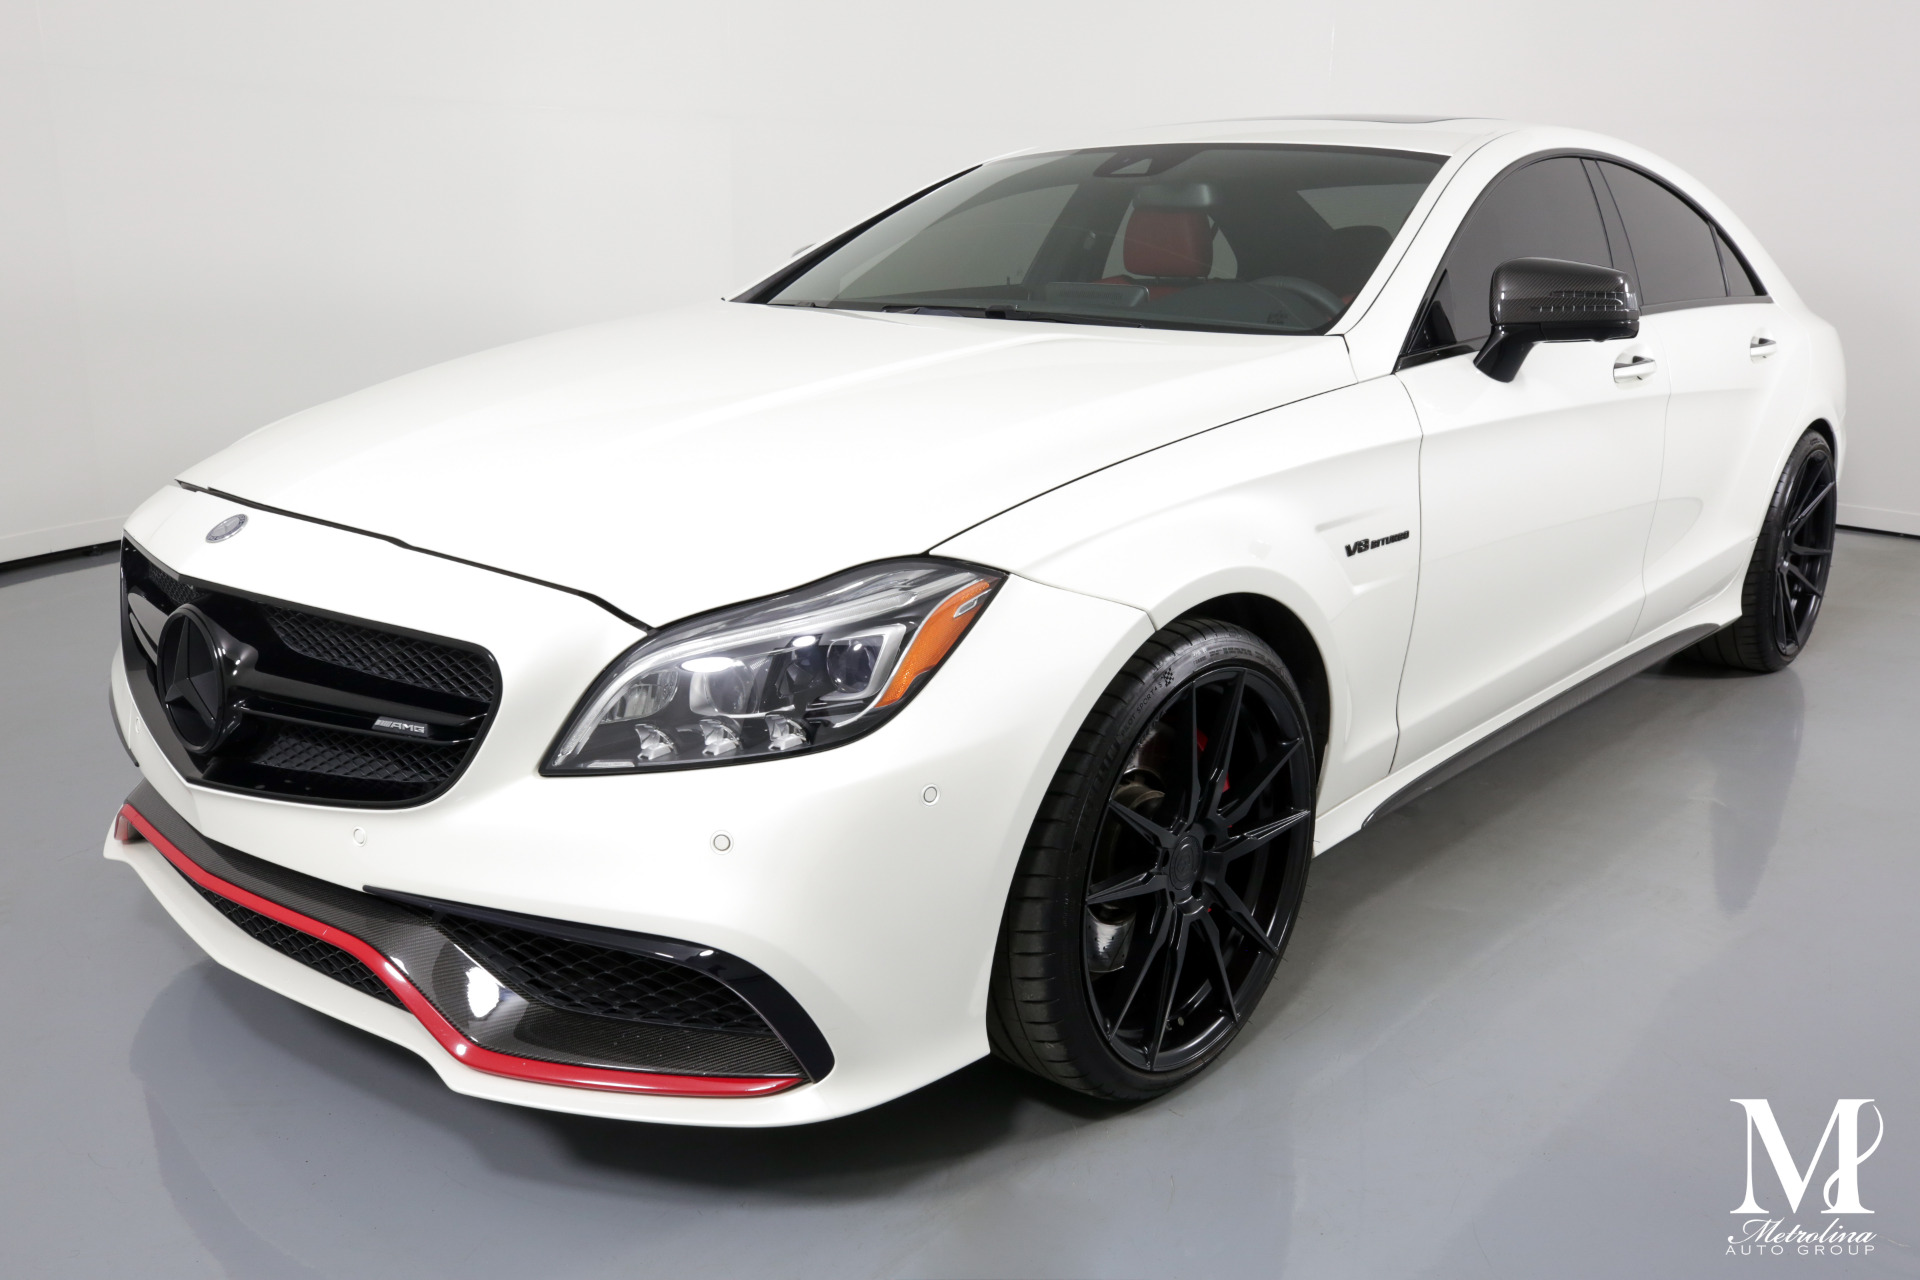 Used 2016 Mercedes-Benz CLS AMG CLS 63 S for sale $61,996 at Metrolina Auto Group in Charlotte NC 28217 - 4